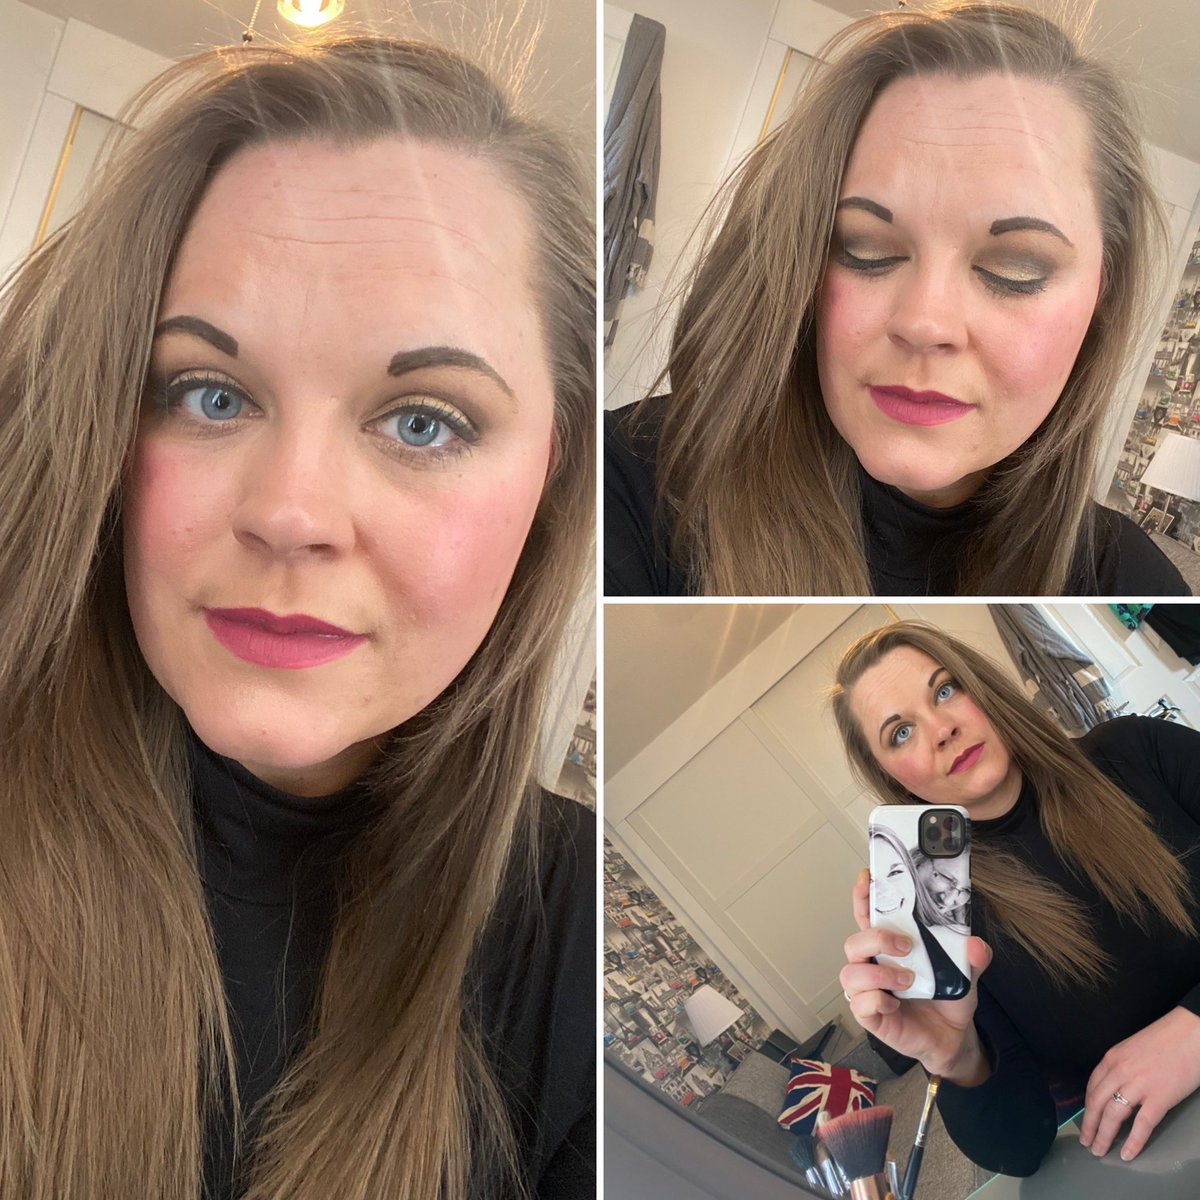 Love having the time on a Saturday to have a makeup play .  #makeuplook #makeuplove #makeupbyme #makeupart #makeuplovers #makeuplife #makeupoftheday #makeuplooks #makeuplover #makeuptalk #makeupgeek #makeupobsessed #makeuptutorial #makeuponpoint #makeupaddict #makeuptipspic.twitter.com/SiBG5V9ghD